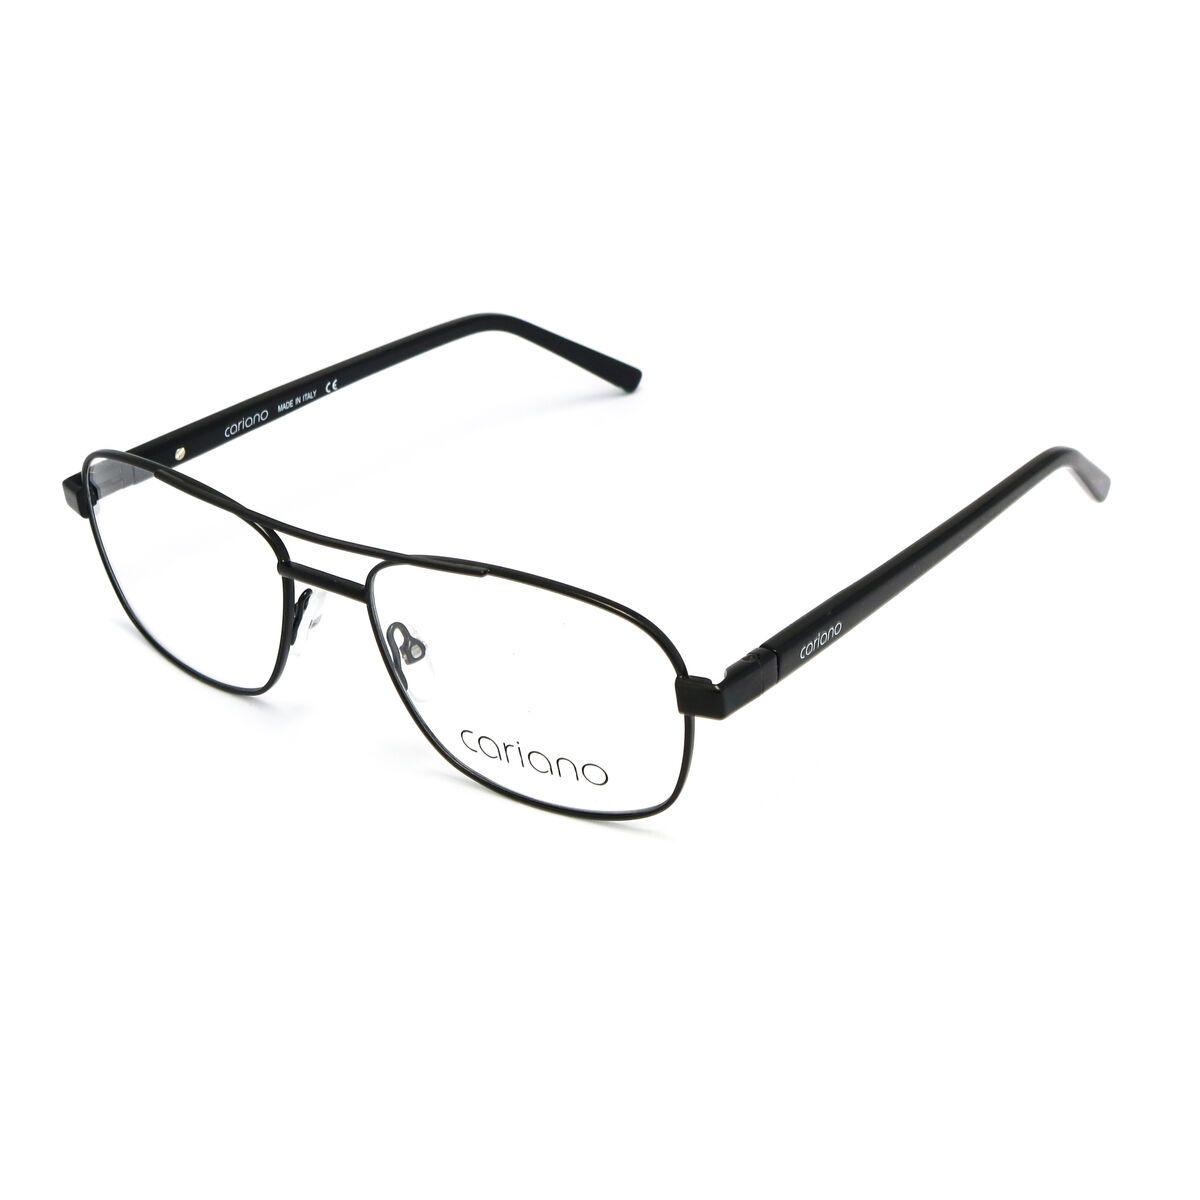 Cariano - 100 A size - 52